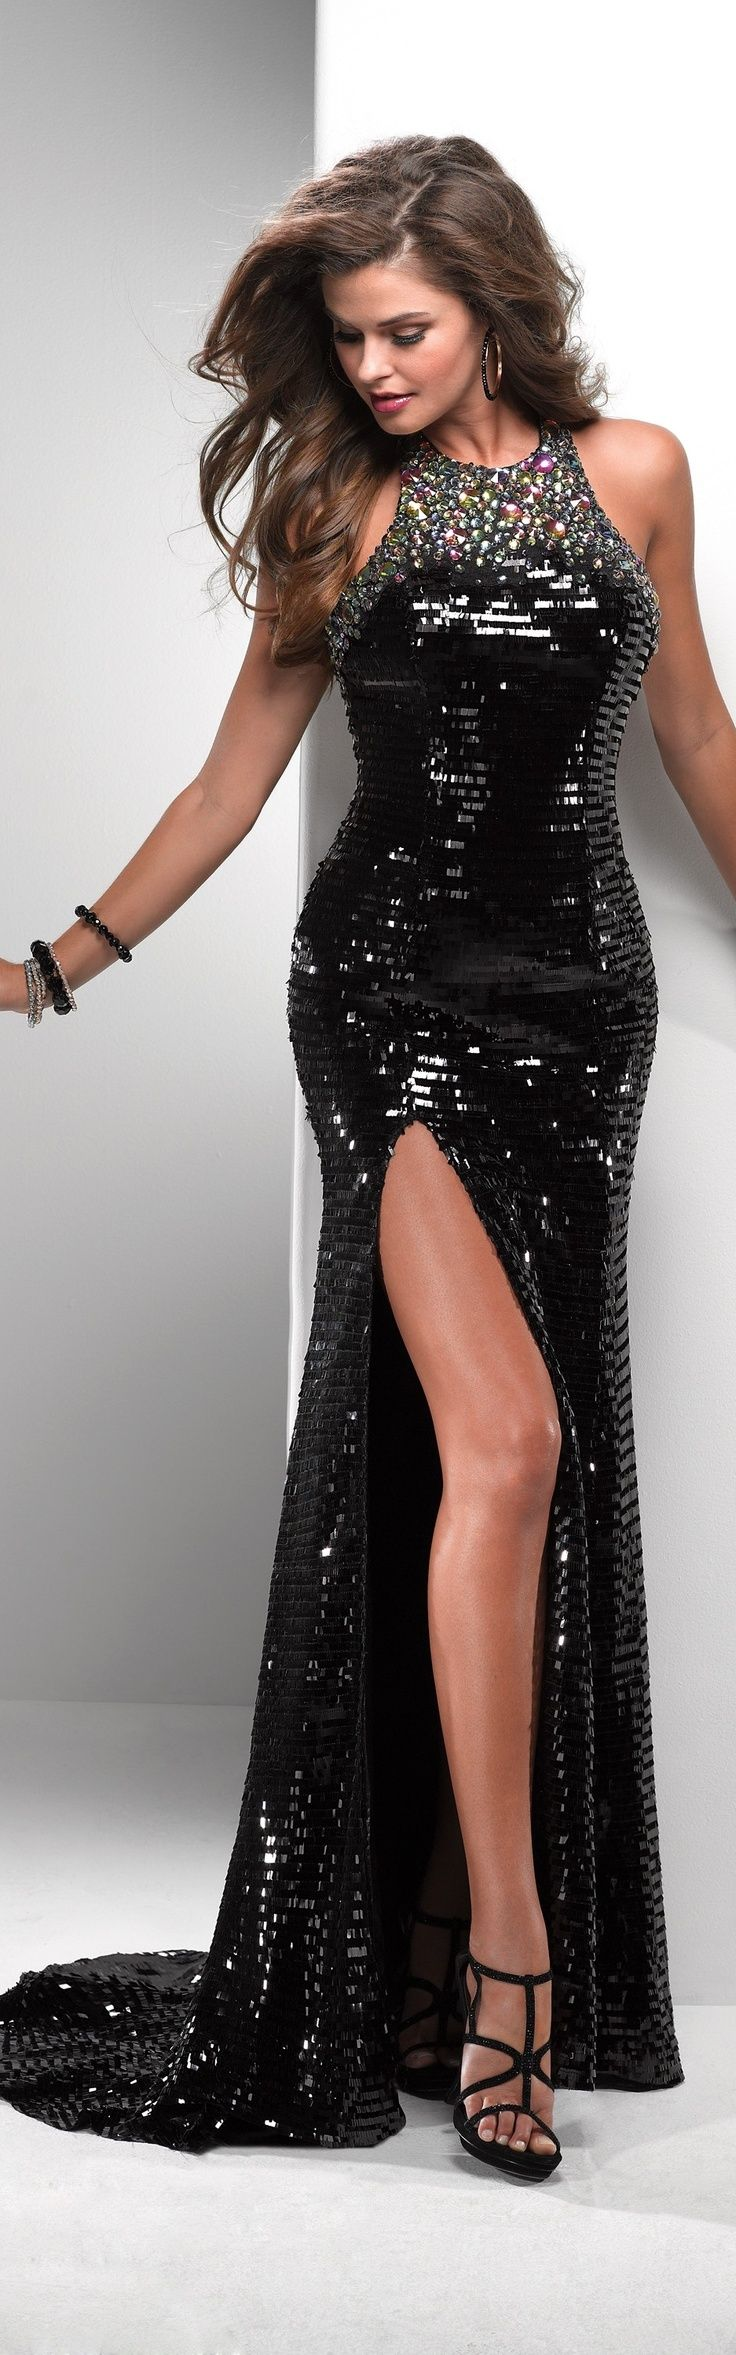 Feel heavenly on your special evening date sexy dressed